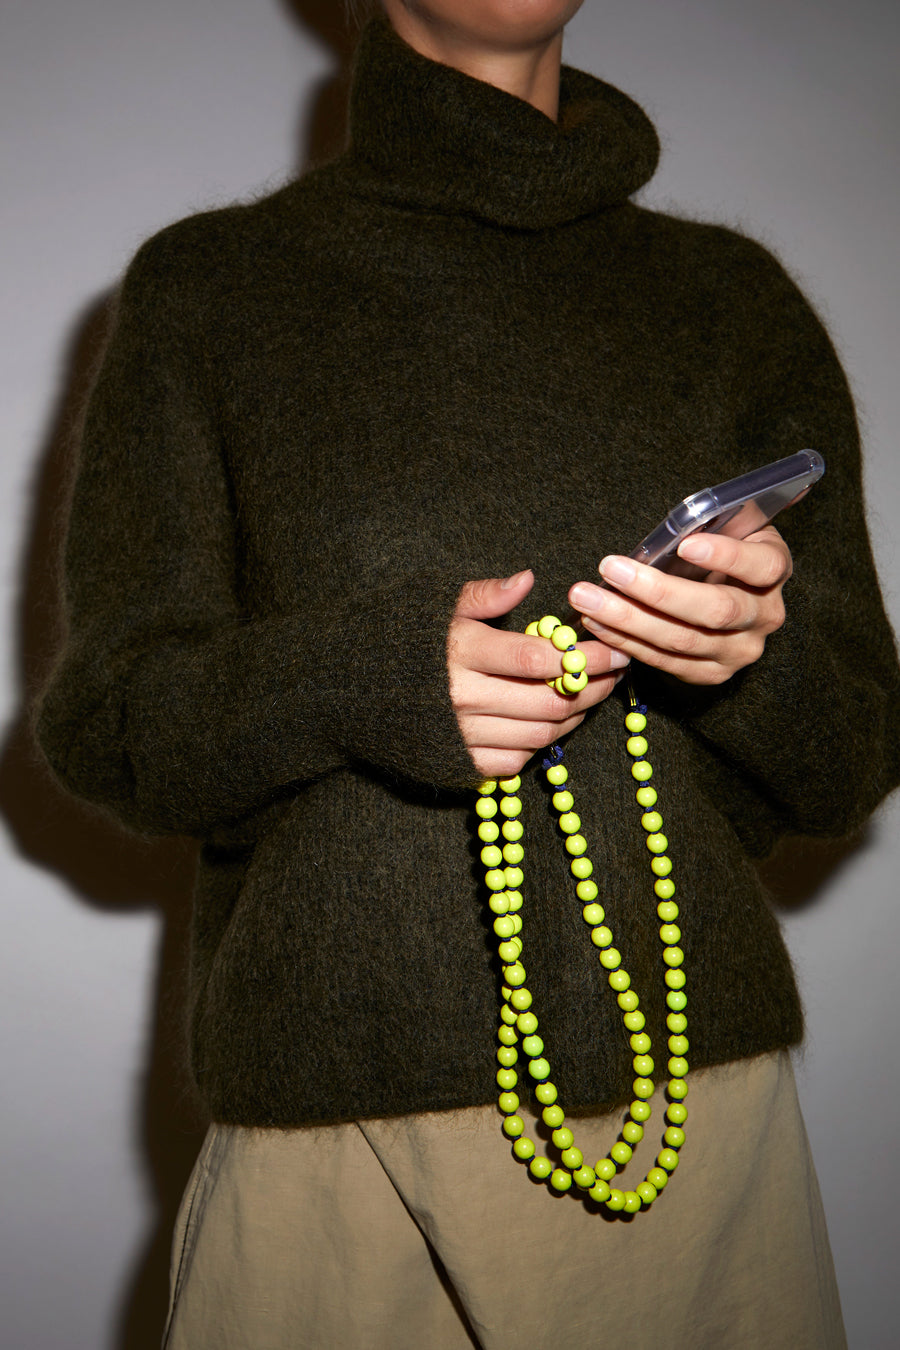 Ina Seifart Handykette Iphone Necklace in Neon Yellow and Dark Blue Thread